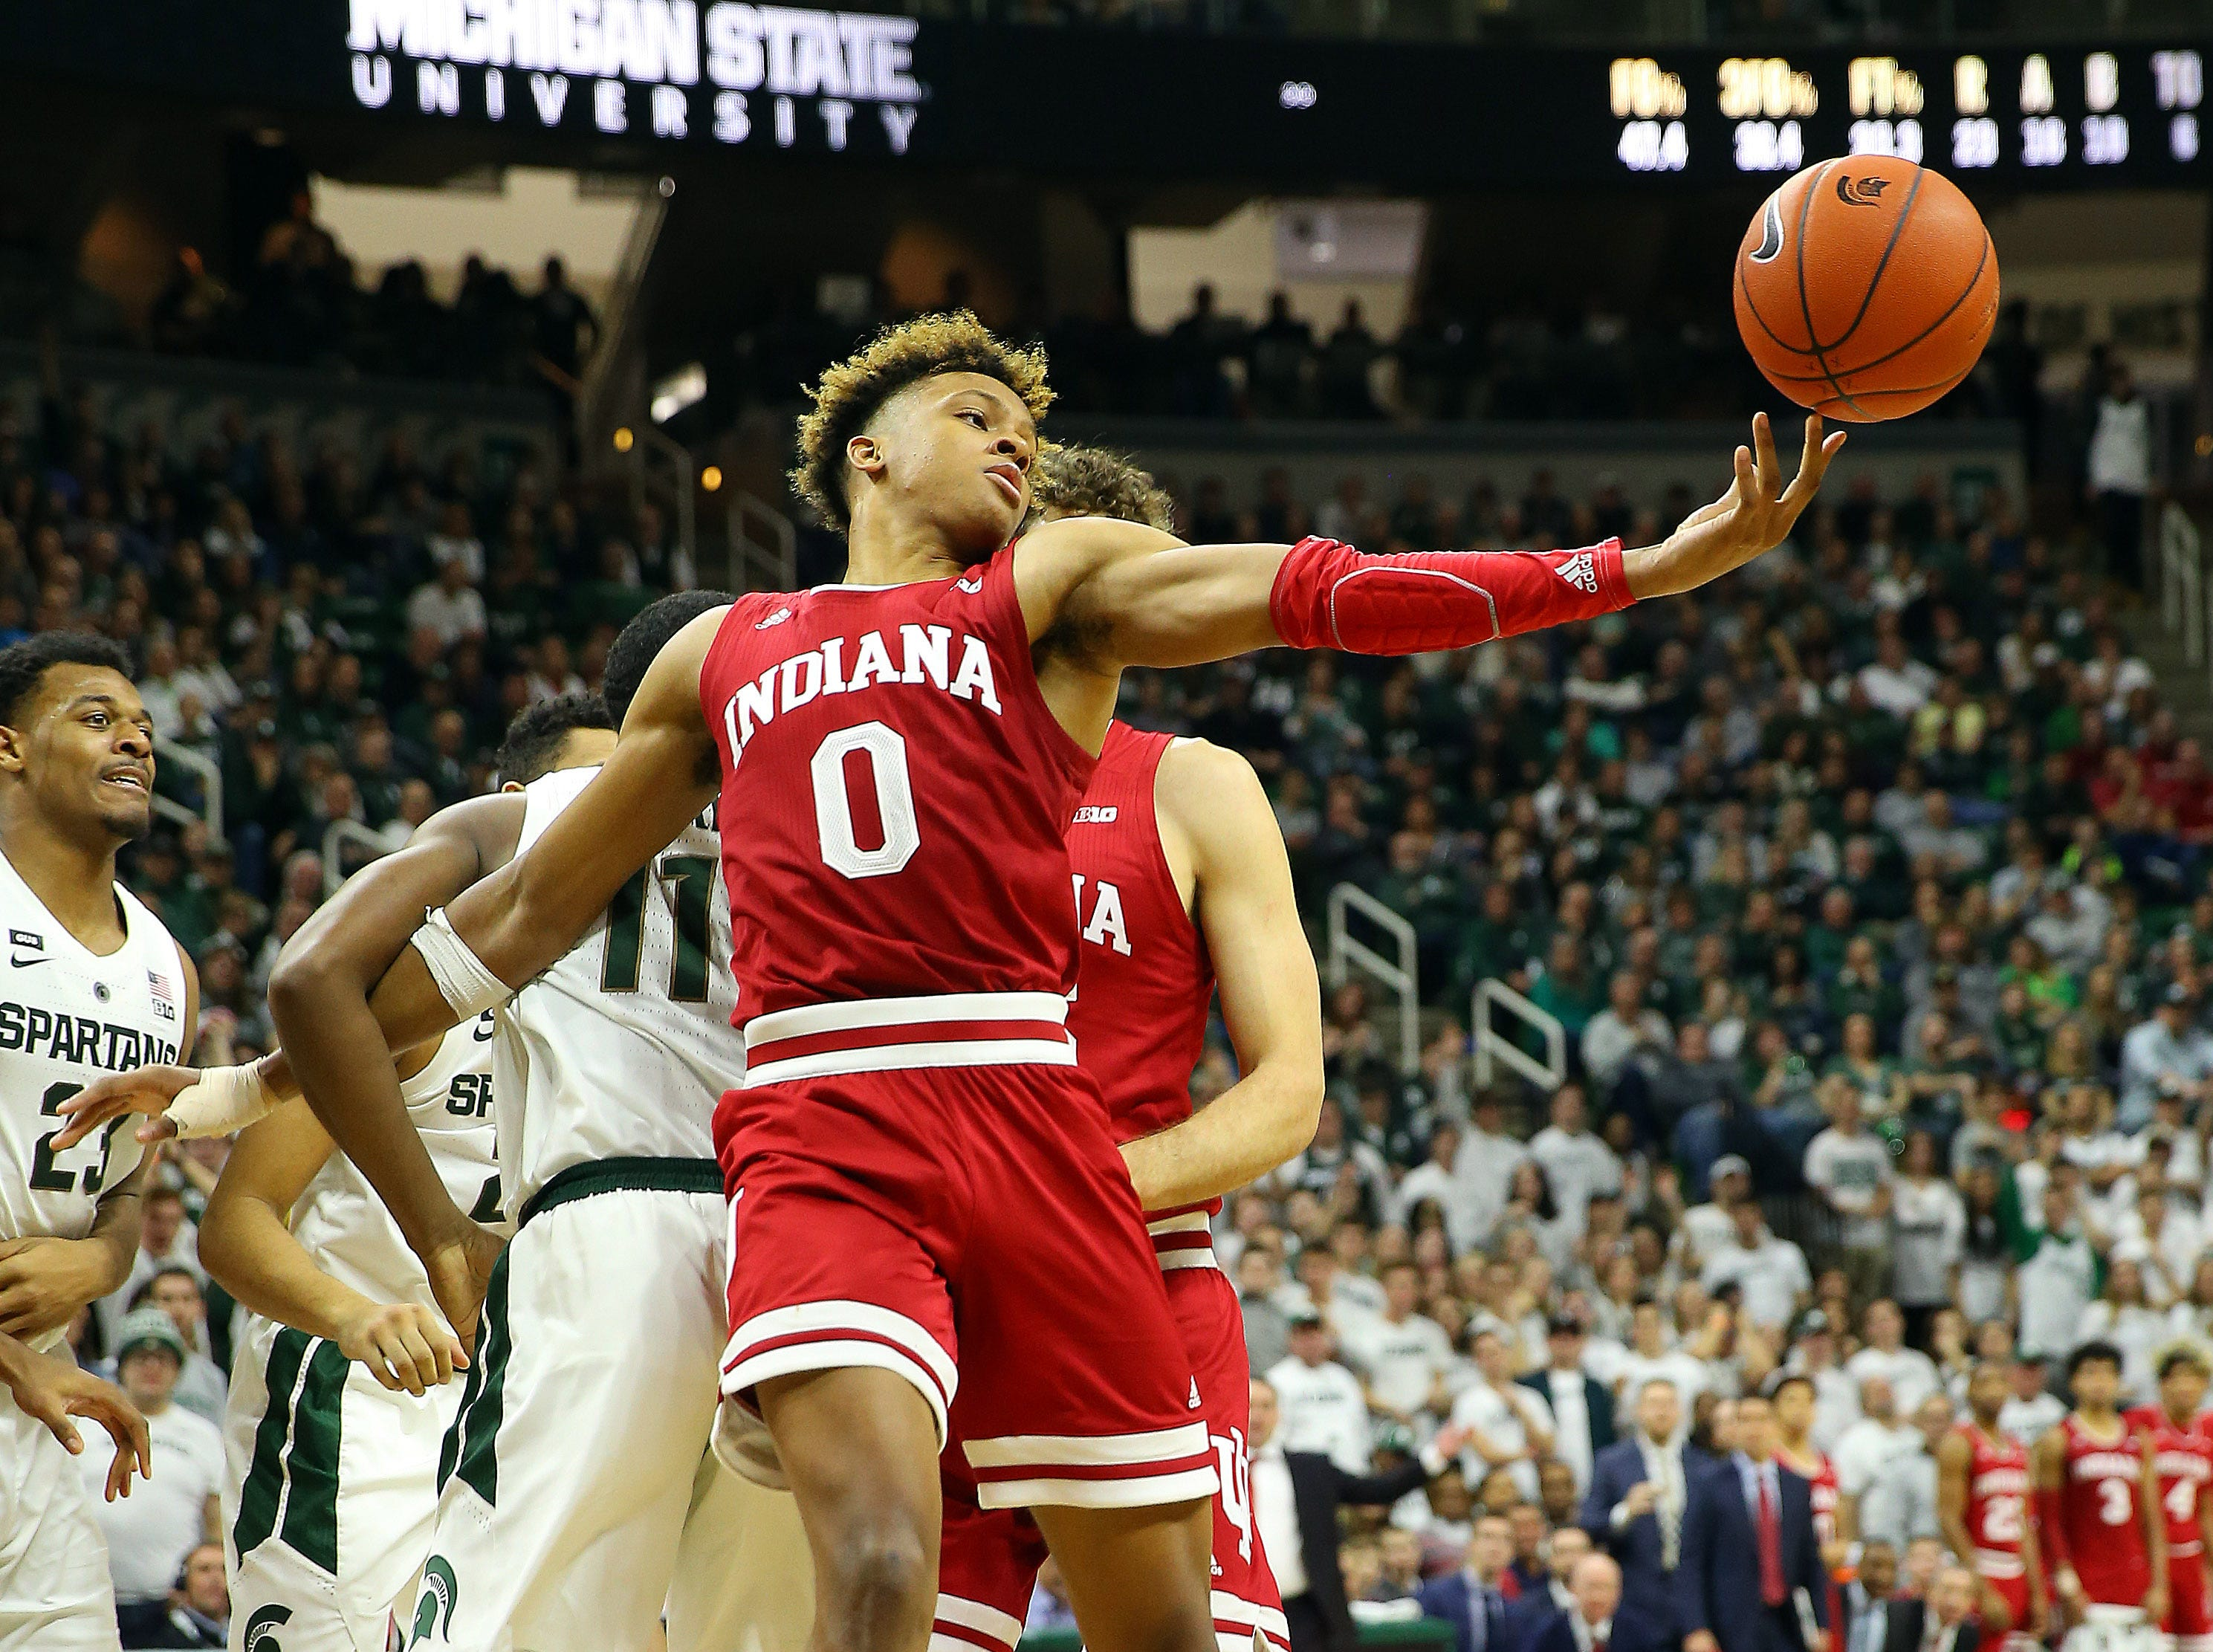 Feb 2, 2019; East Lansing, MI, USA; Indiana Hoosiers guard Romeo Langford (0) gets a rebound during the second half of a game against the Michigan State Spartans at the Breslin Center. Mandatory Credit: Mike Carter-USA TODAY Sports